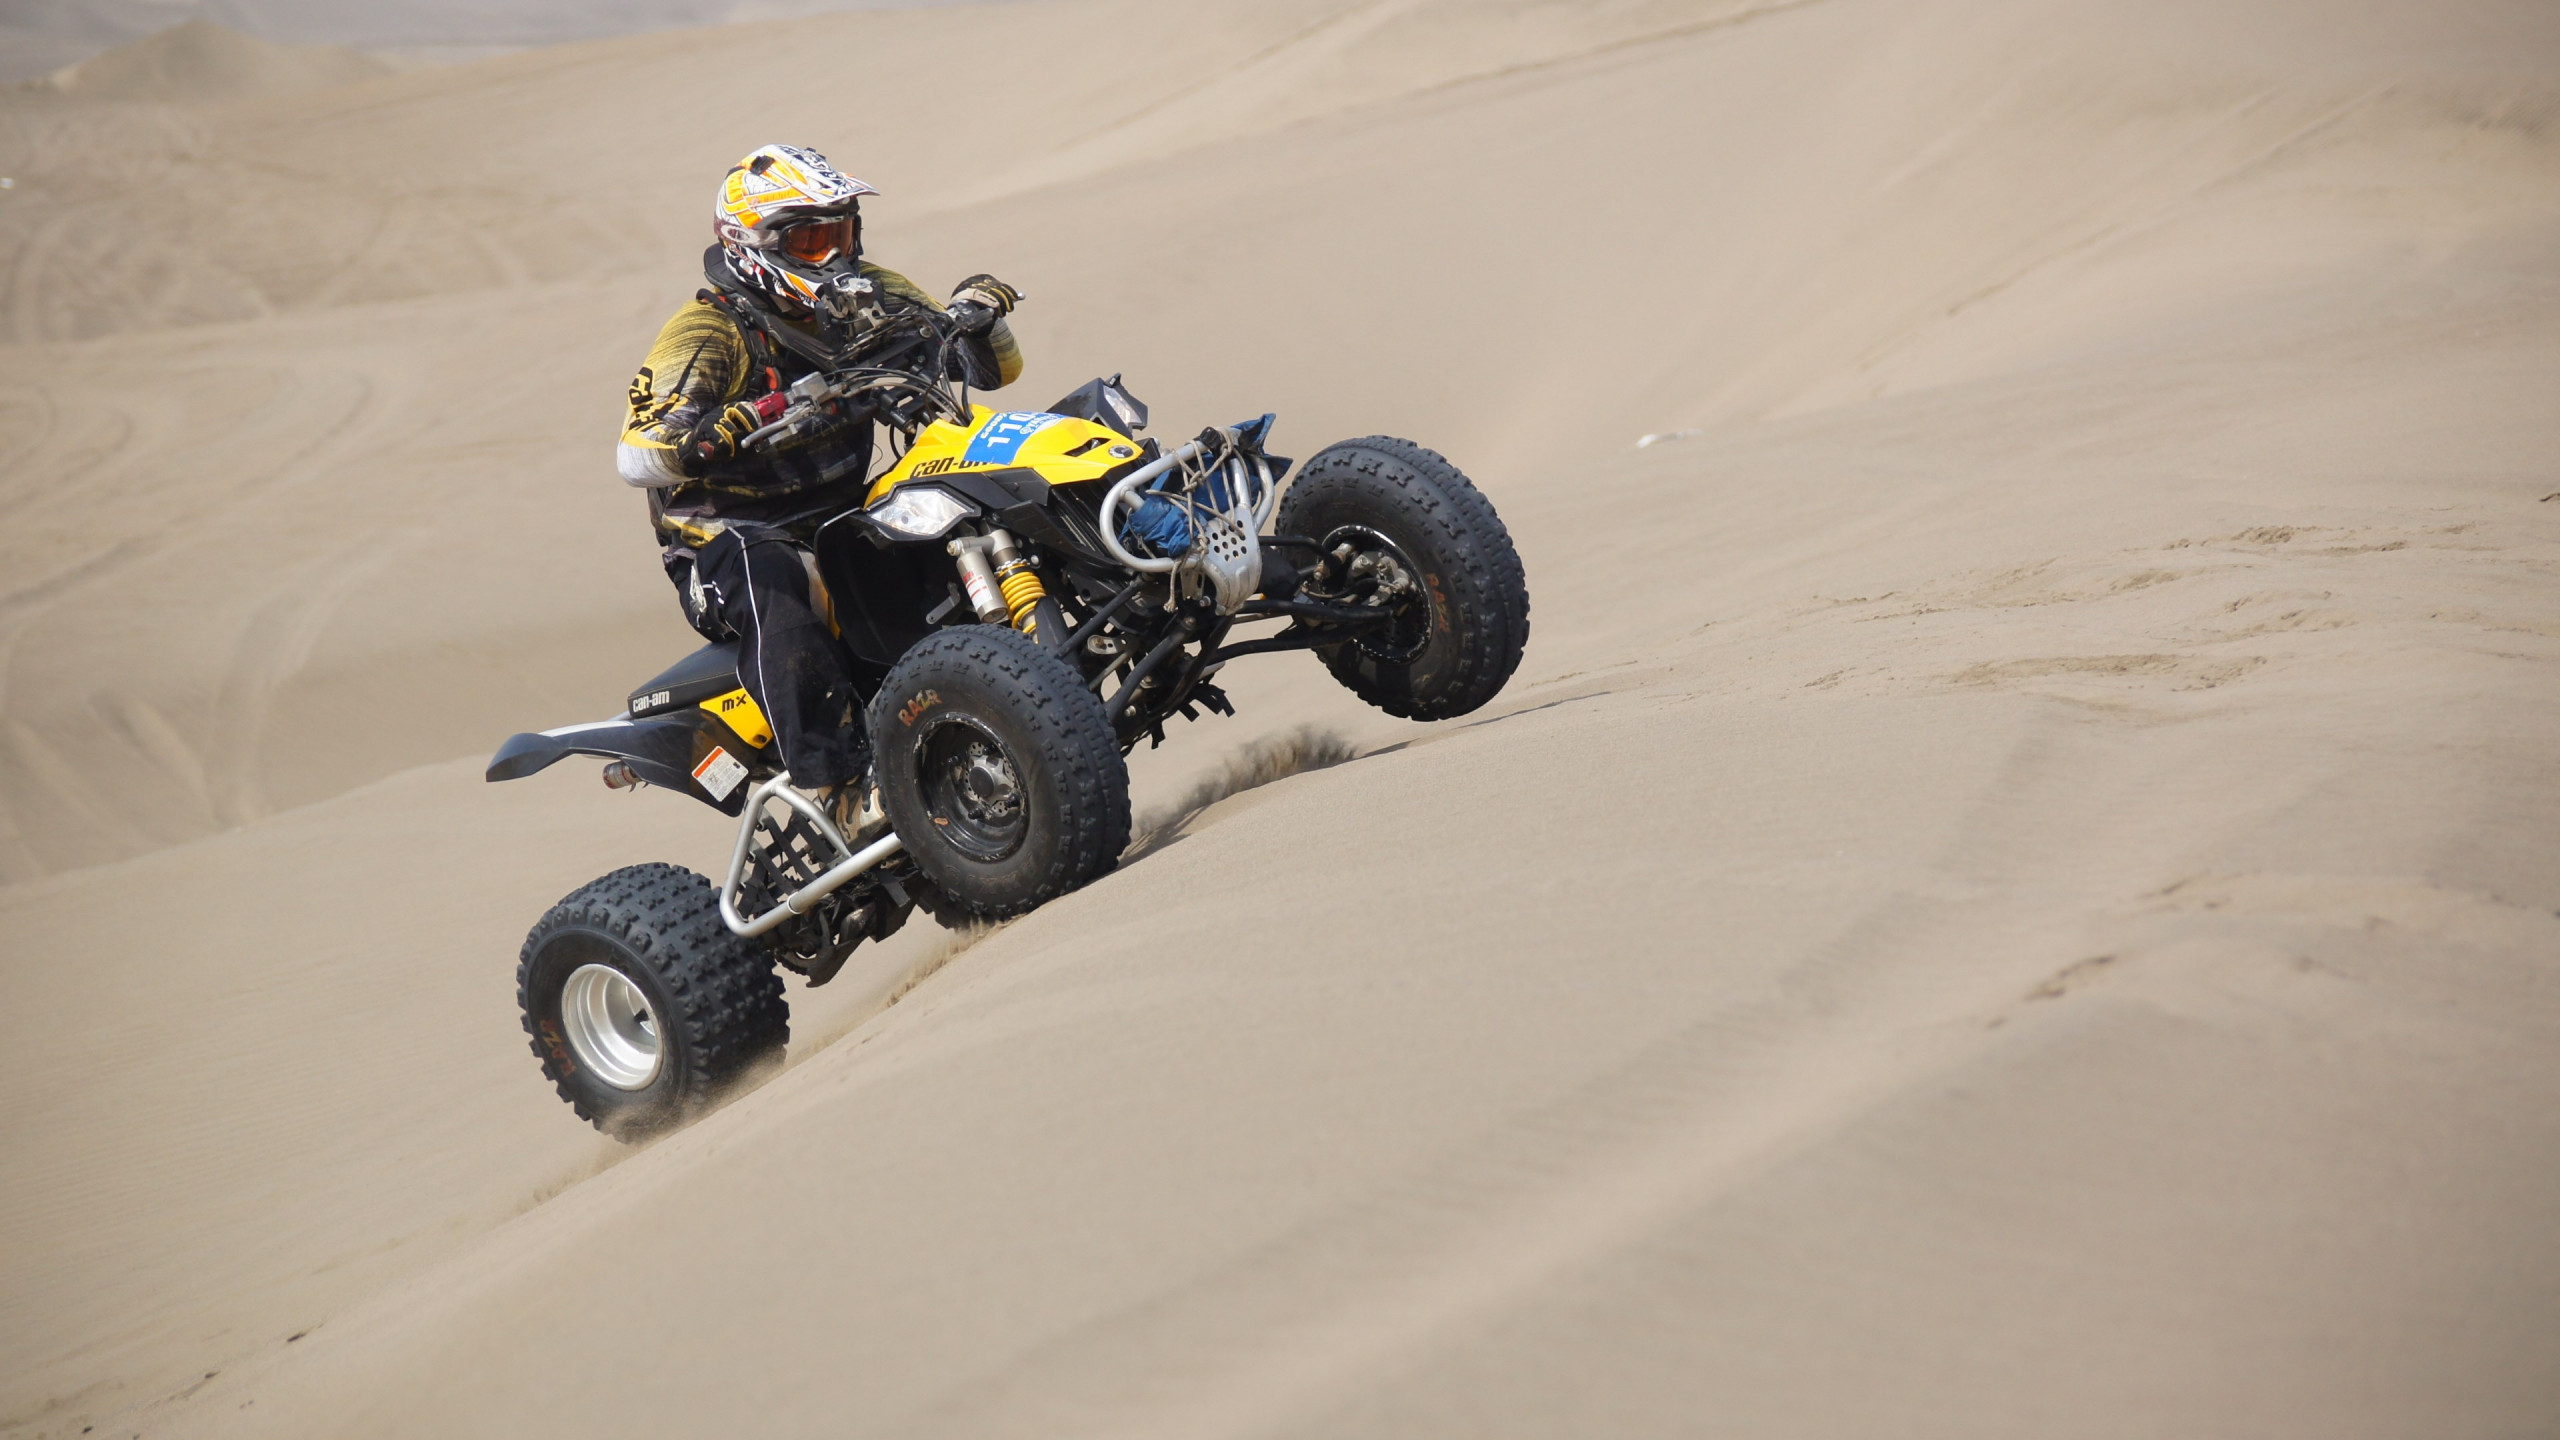 Racing with ATV | 2560x1440 wallpaper